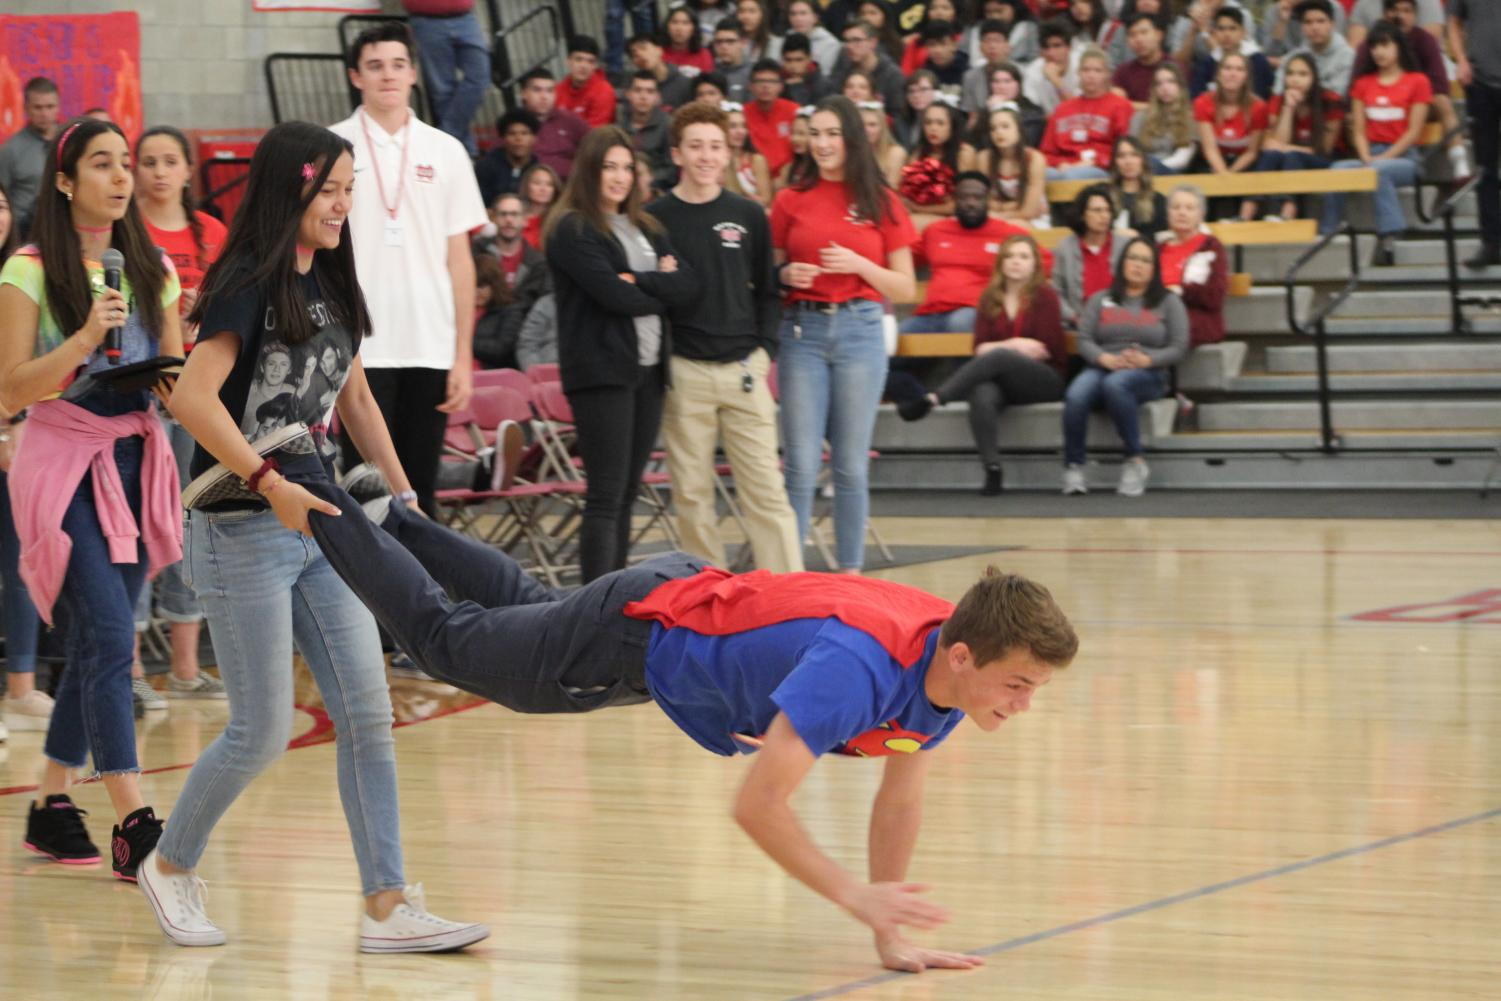 TEAM+PLAYERS%3A+Juniors+Annemarie+Verkuylen+and+Turner+Mills+participate+in+the+wheelbarrow+race+in+the+Spring+Sports+Rally+obstacle+course.+%22I+really+enjoy+engaging+the+student+body+and+watching+them+get+excited+about+games+and+execution%2C%22+Verkuylen+said.